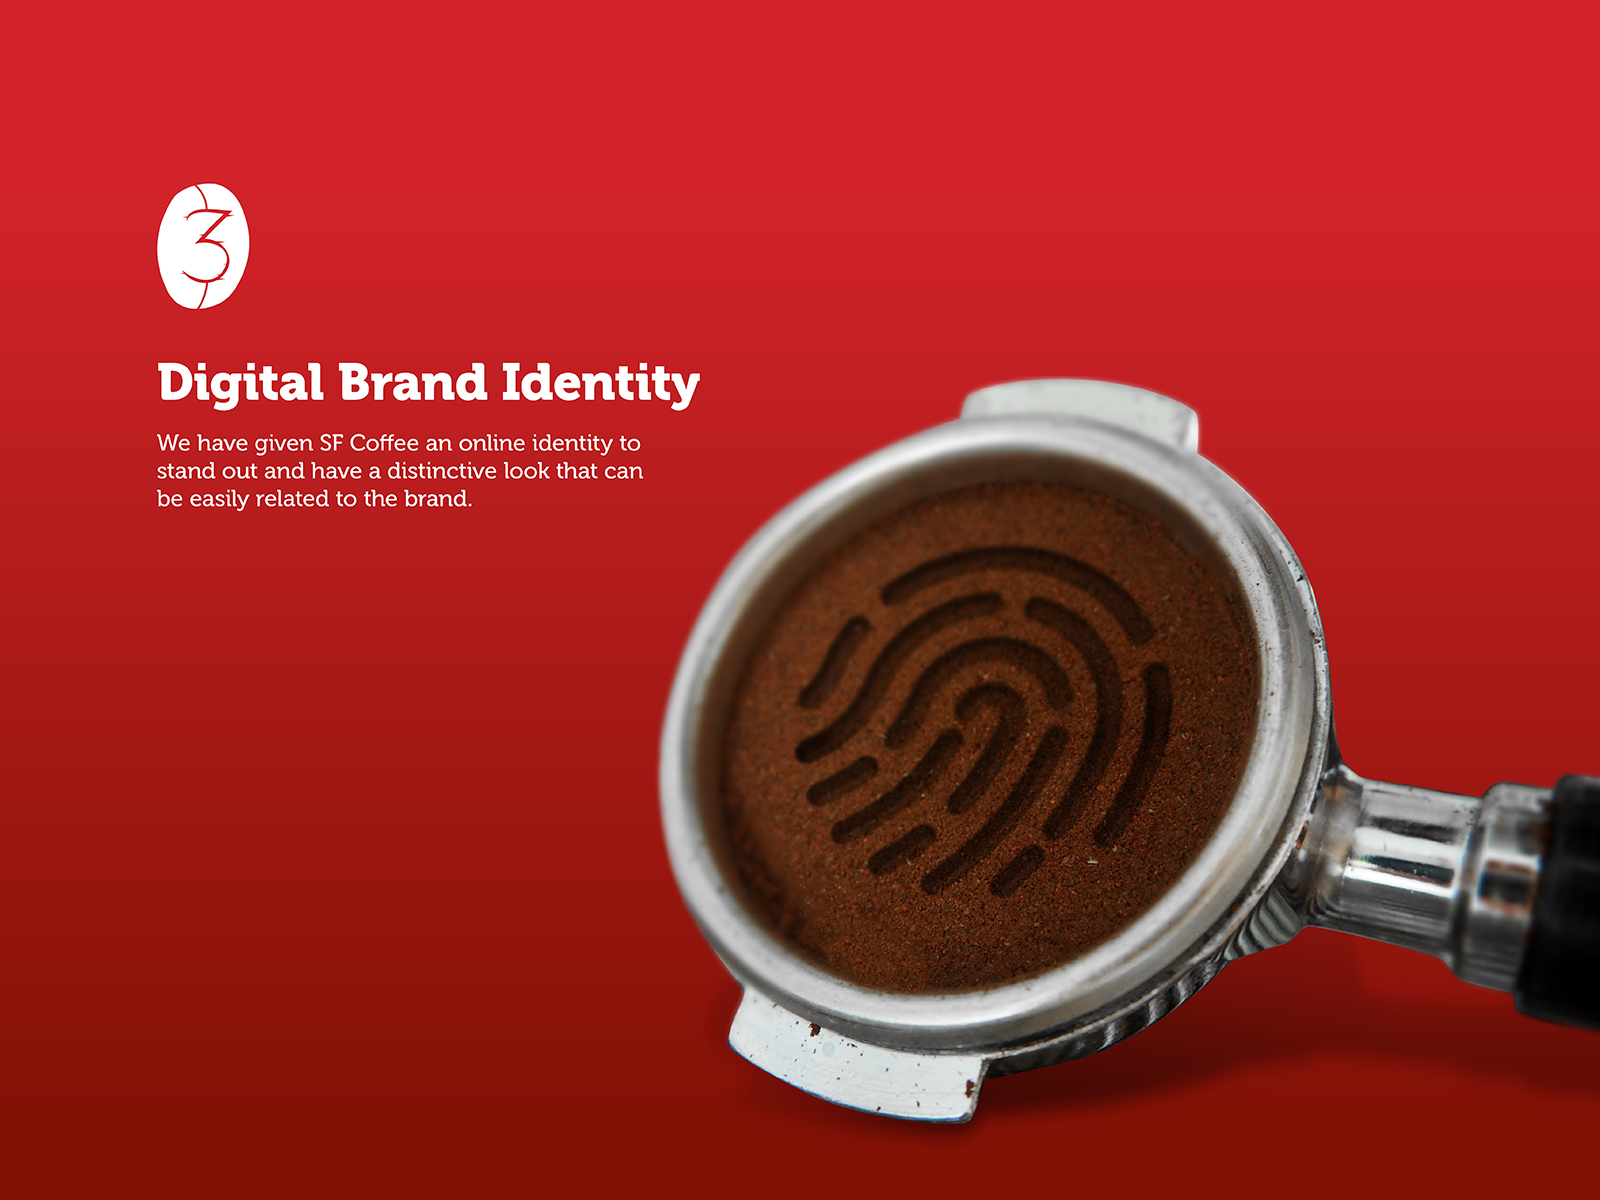 San Francisco Coffee social media management brand identity development for a distinctive social media visual style